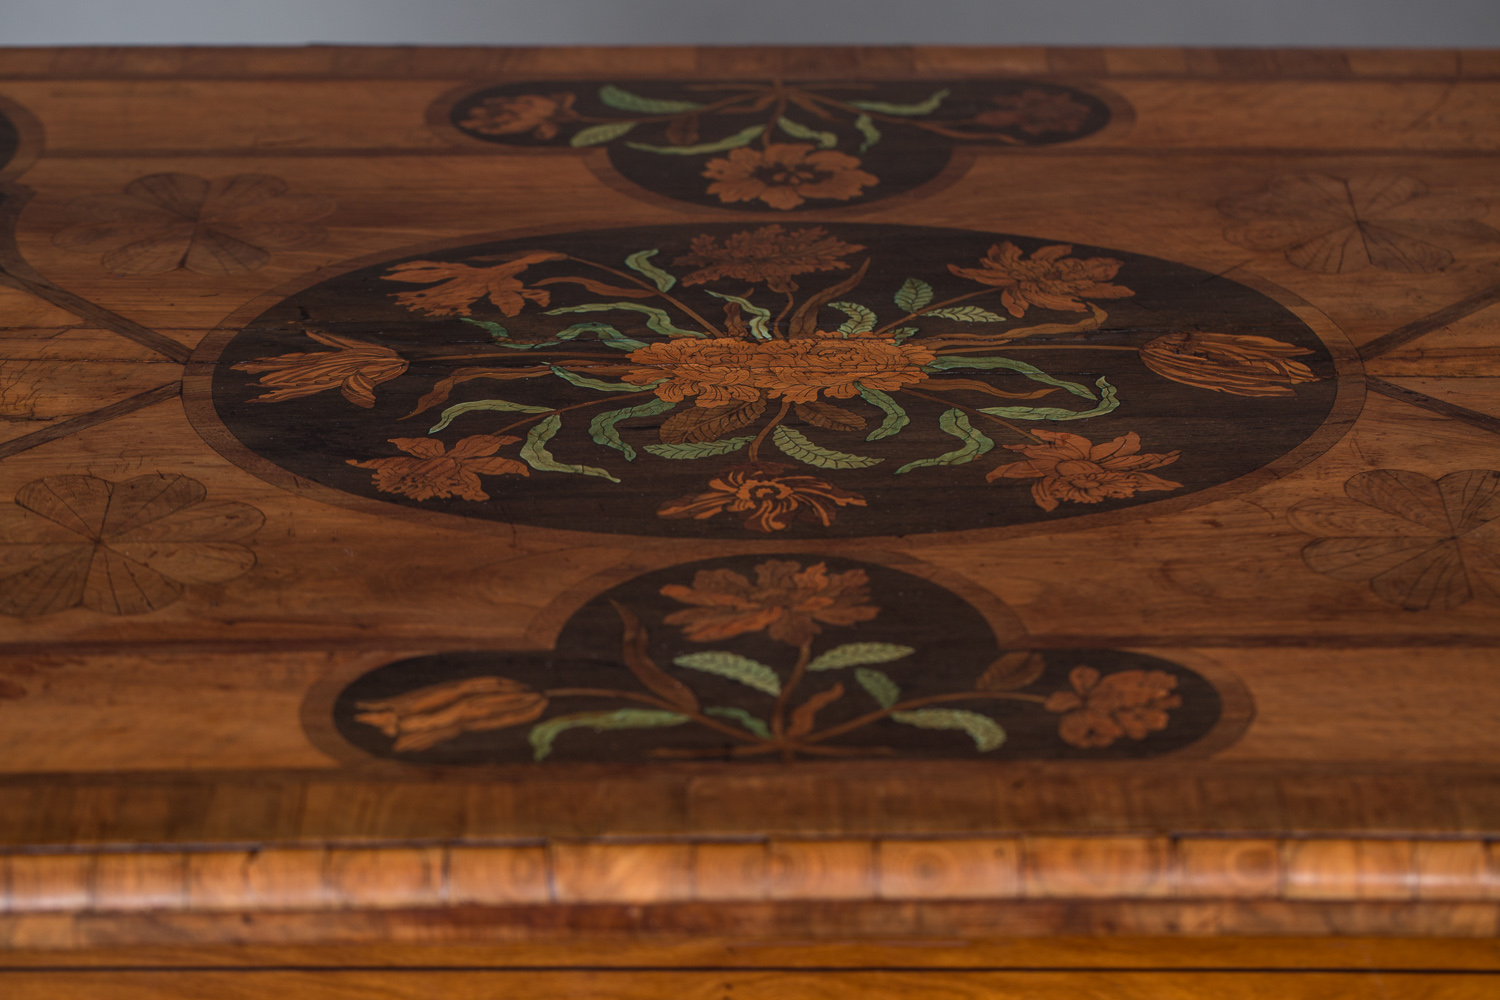 Dutch Desk with Inlay